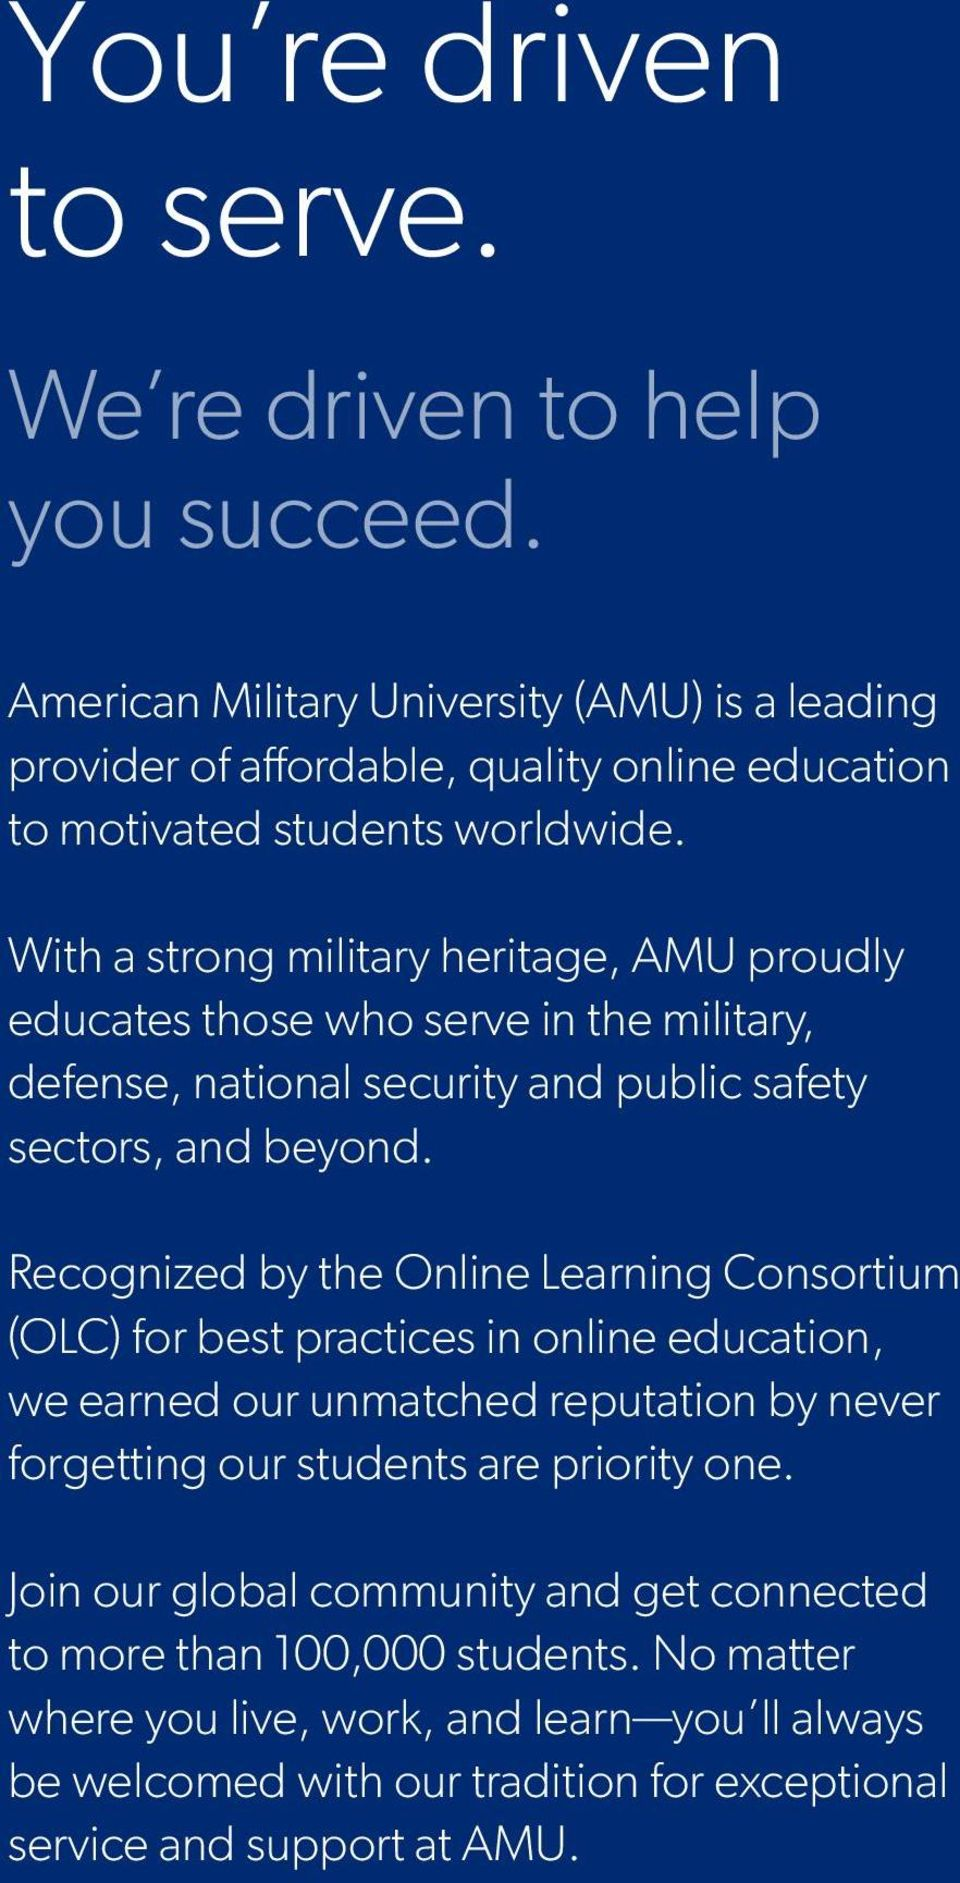 With a strong military heritage, M proudly educates those who serve in the military, defense, national security and public safety sectors, and beyond.